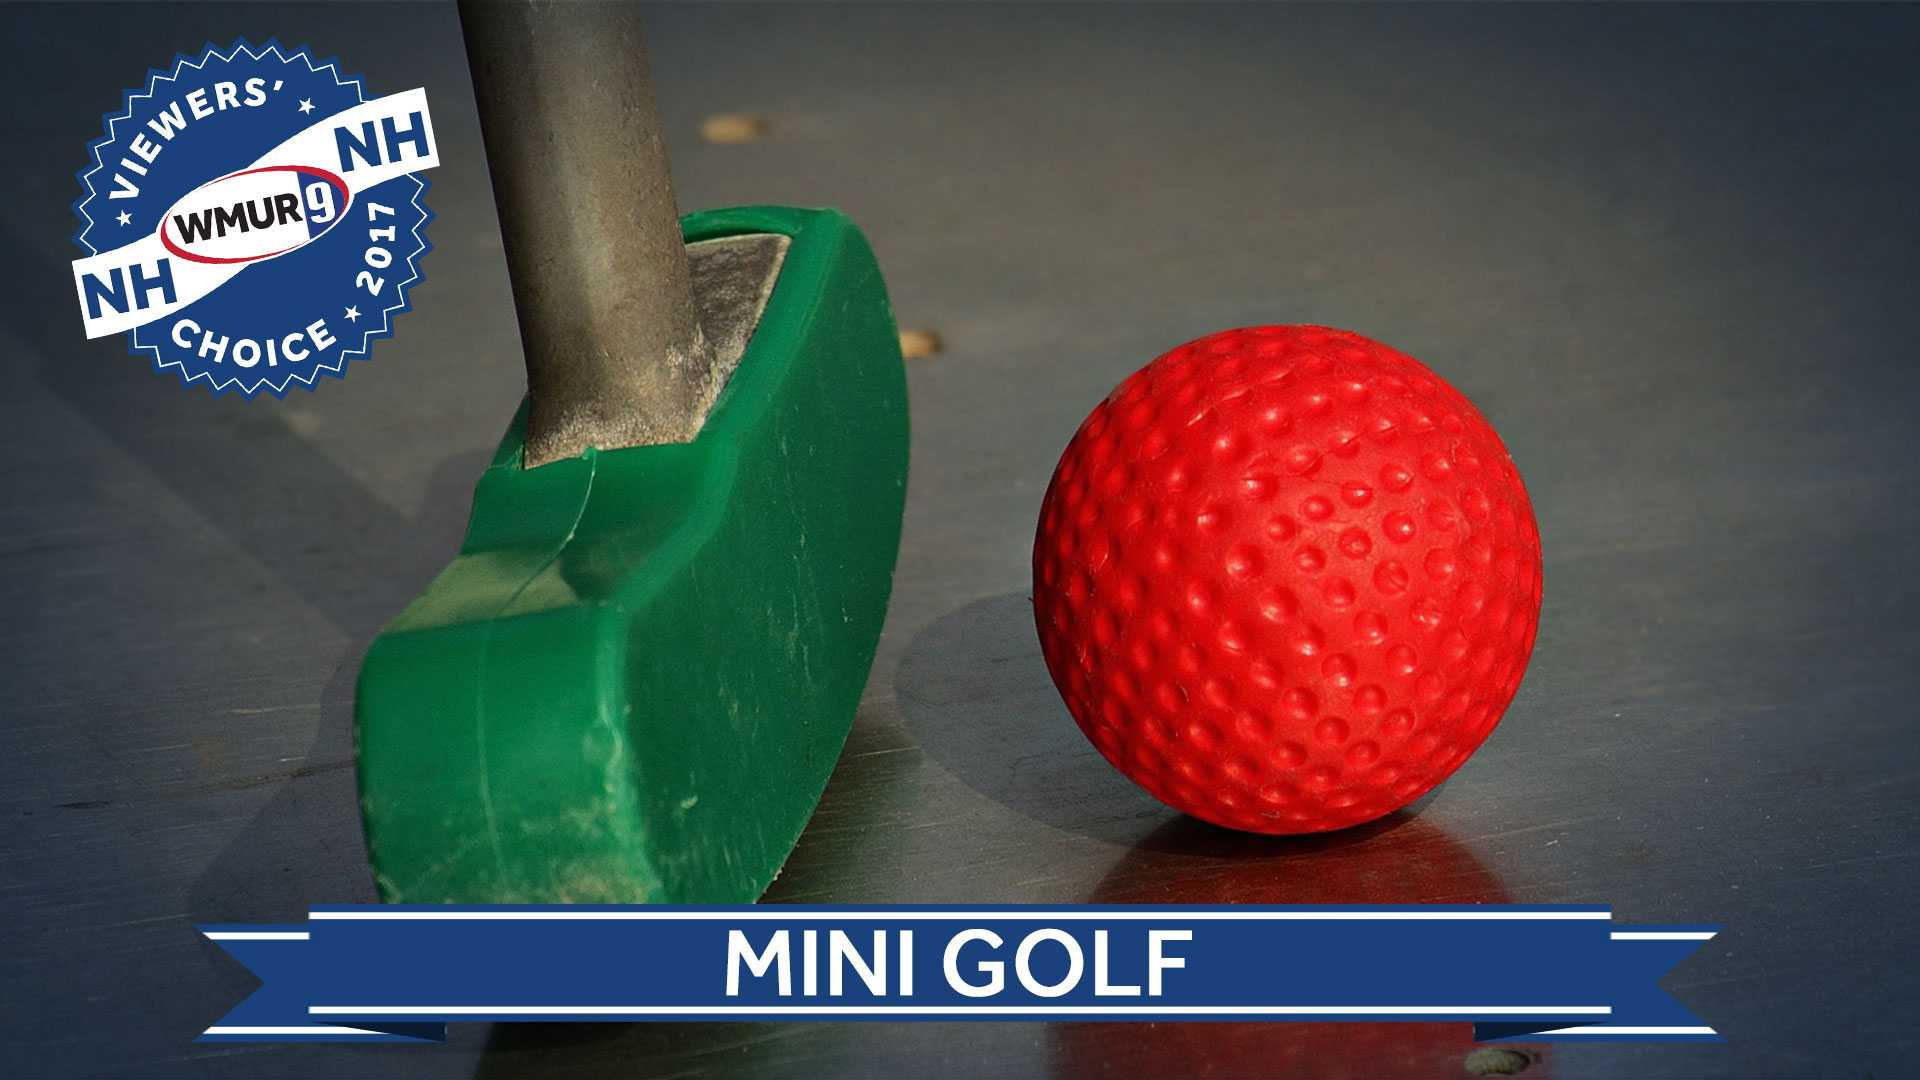 Viewers' Choice mini golf